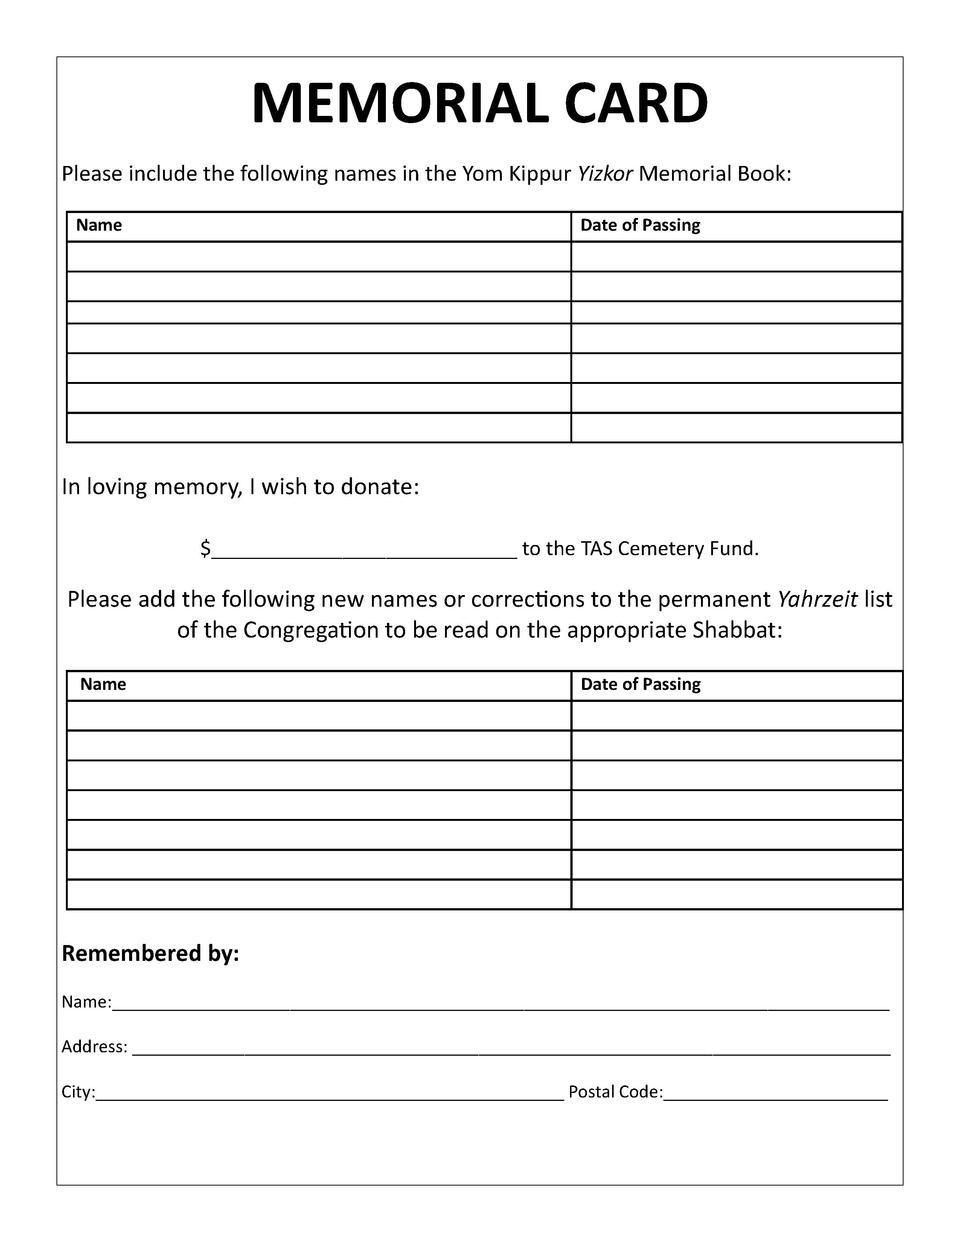 MEMORIAL CARD Please include the following names in the Yom Kippur Yizkor Memorial Book  Name  Date of Passing  In loving ...